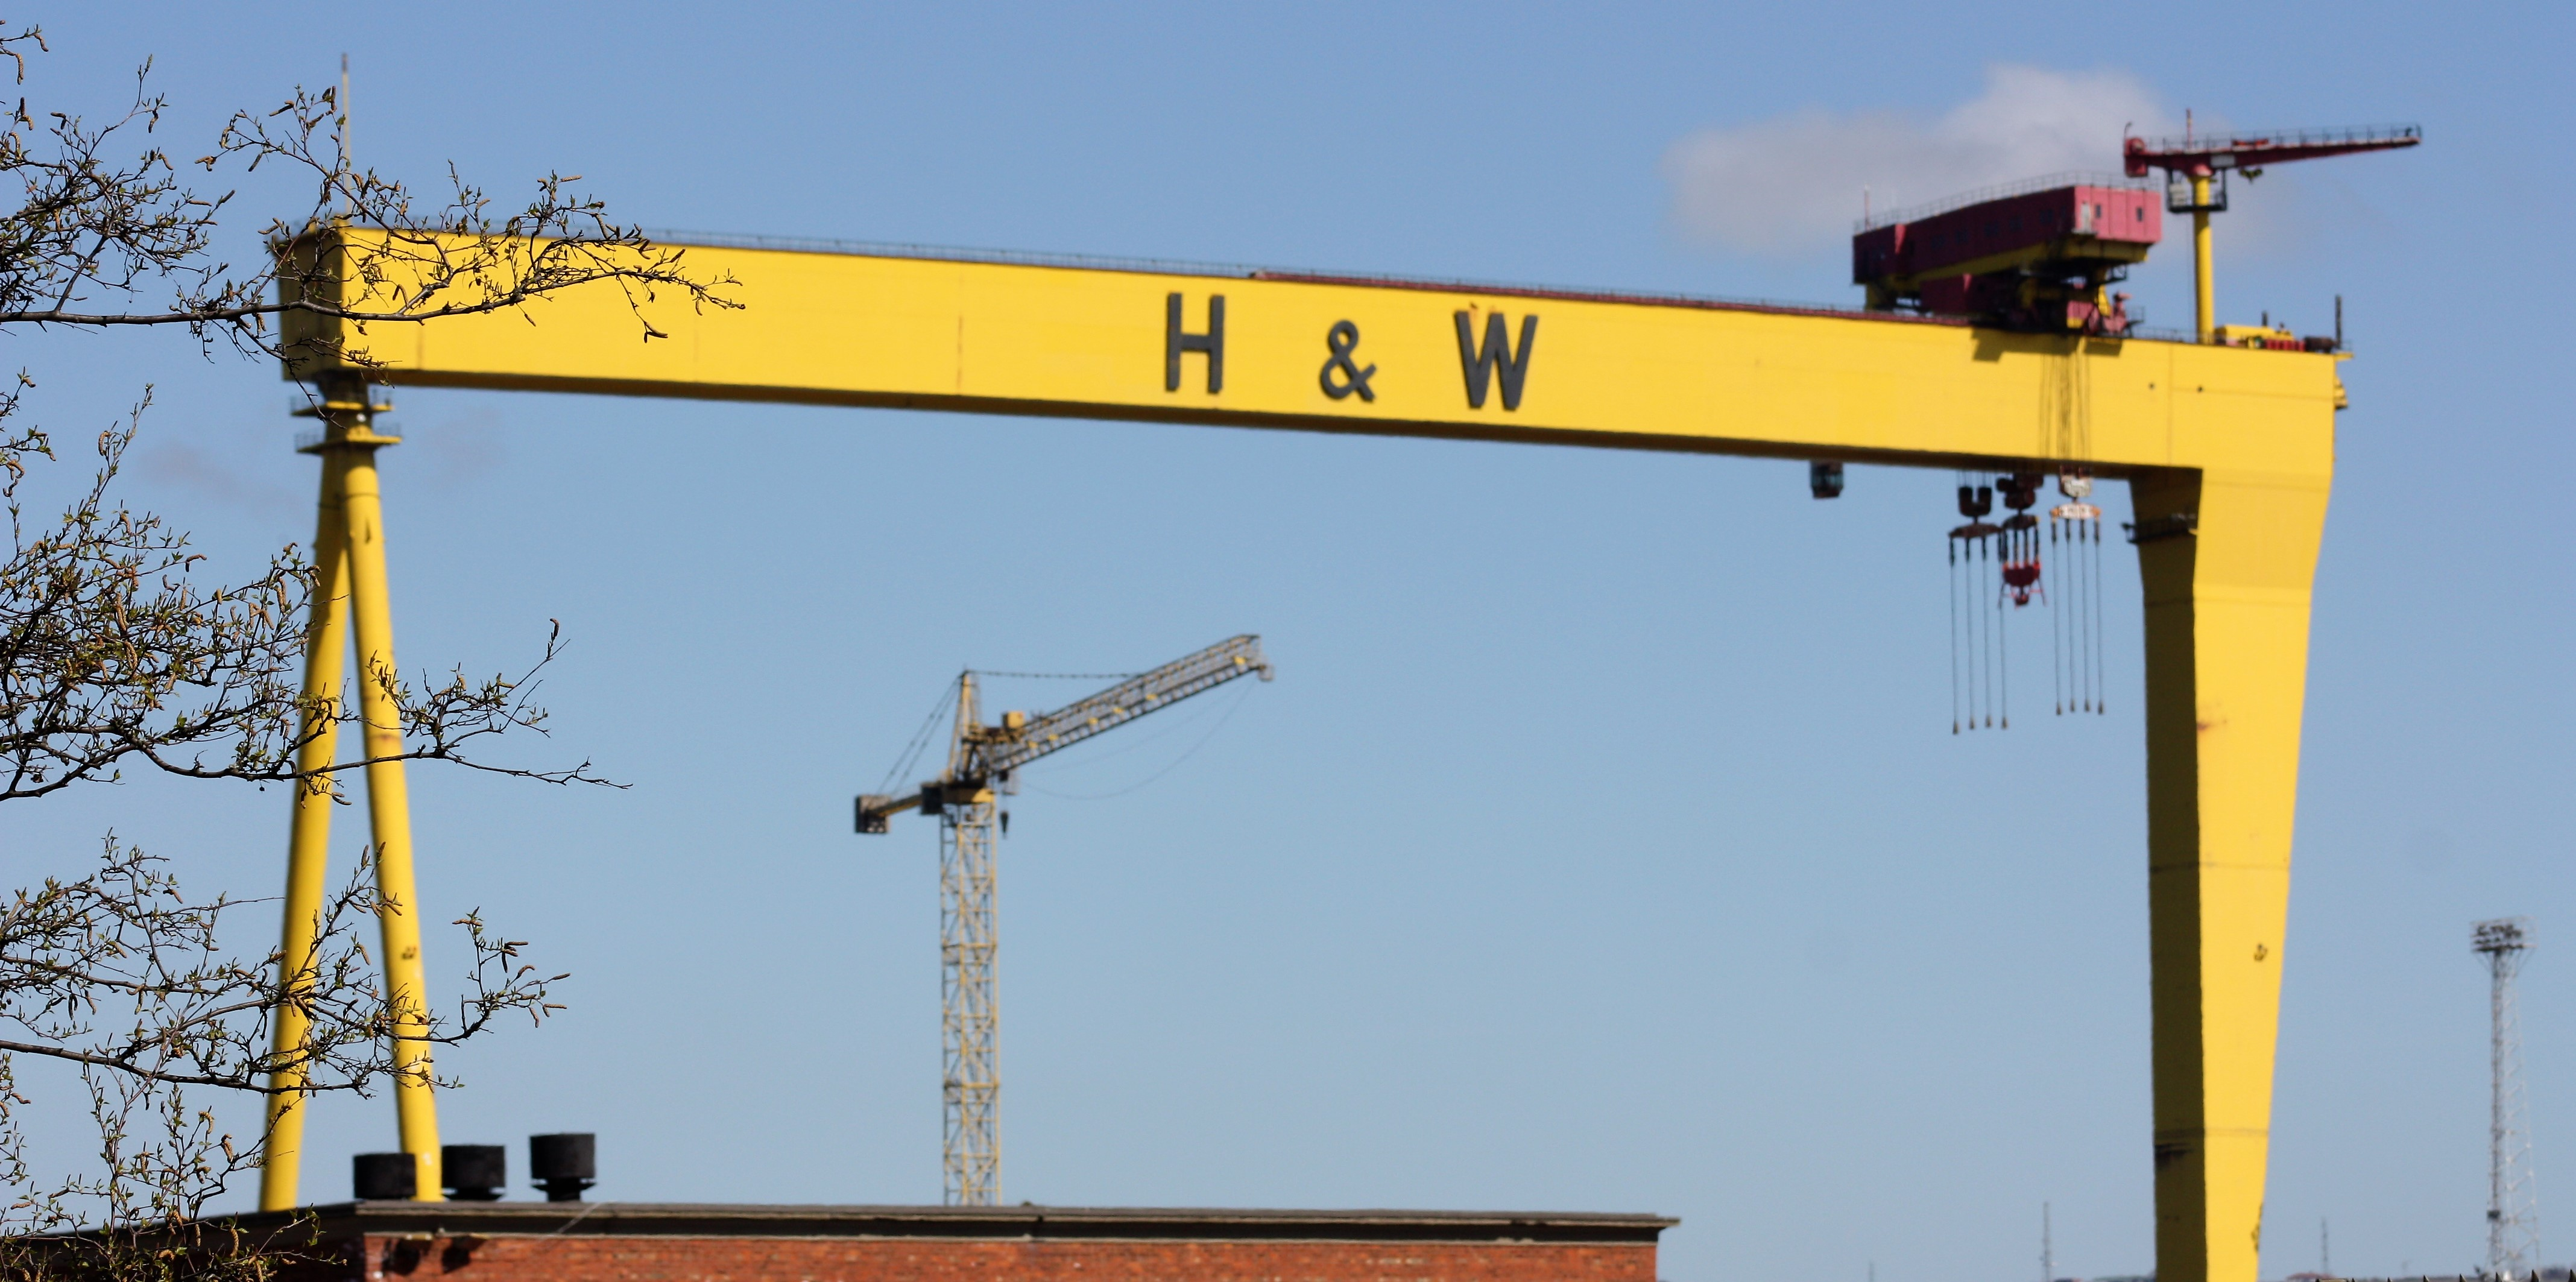 Harland and Wolff Cranes - History of Belfast